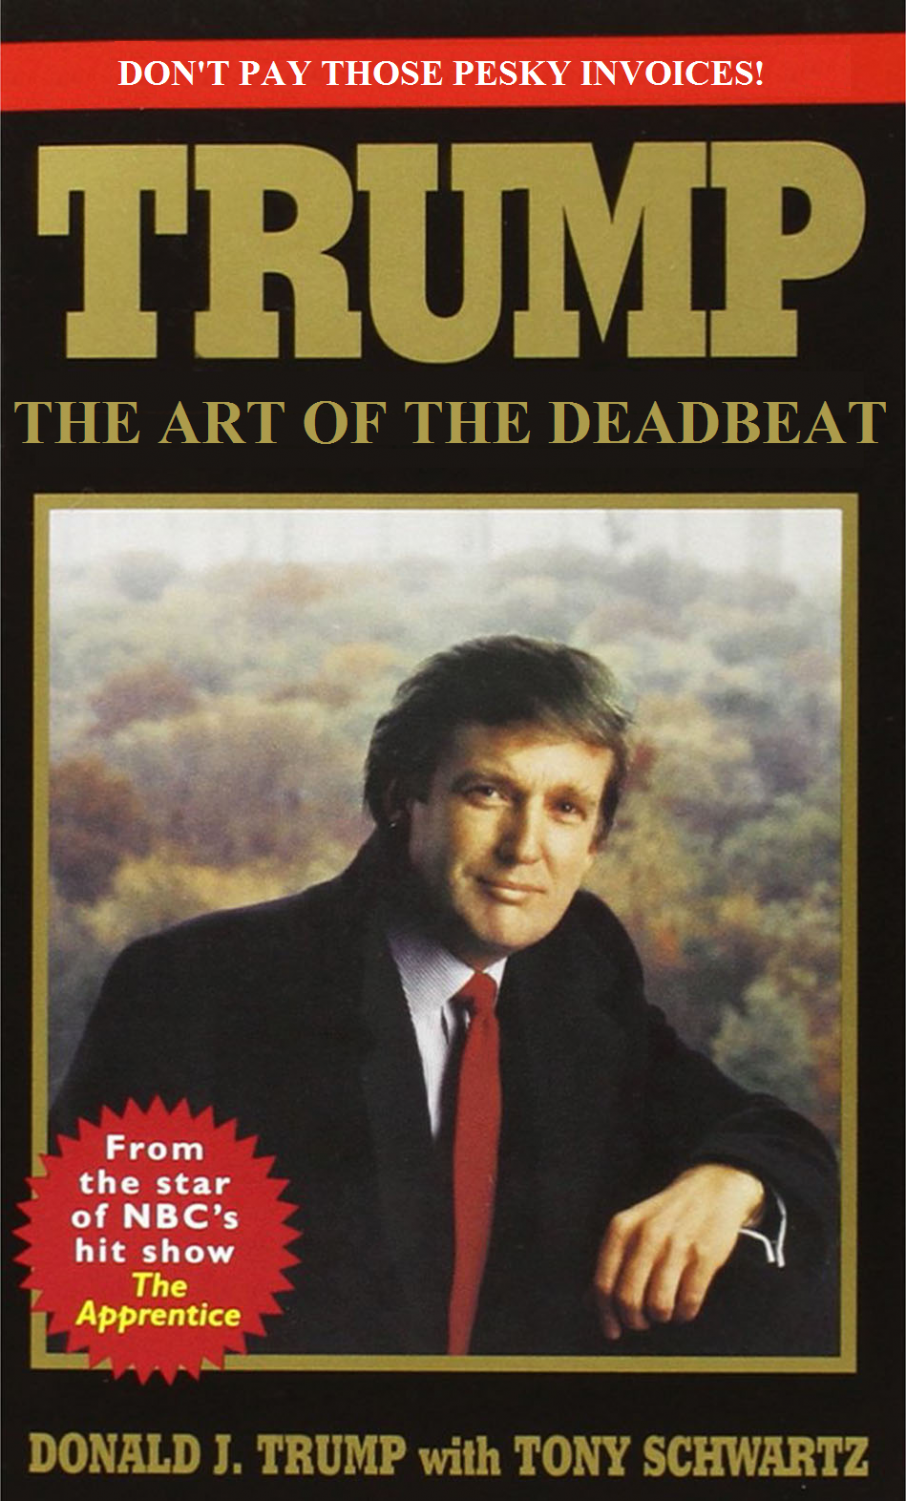 """In 1987,  Donald Trump's ghostwriter, Tony Schwartz. followed Trump for around 18 months while he was completing daily tasks and managing his business to gather information to write """"The Art of the Deal,"""" which became a bestseller.  https://creativecommons.org/licenses/by/2.0/"""